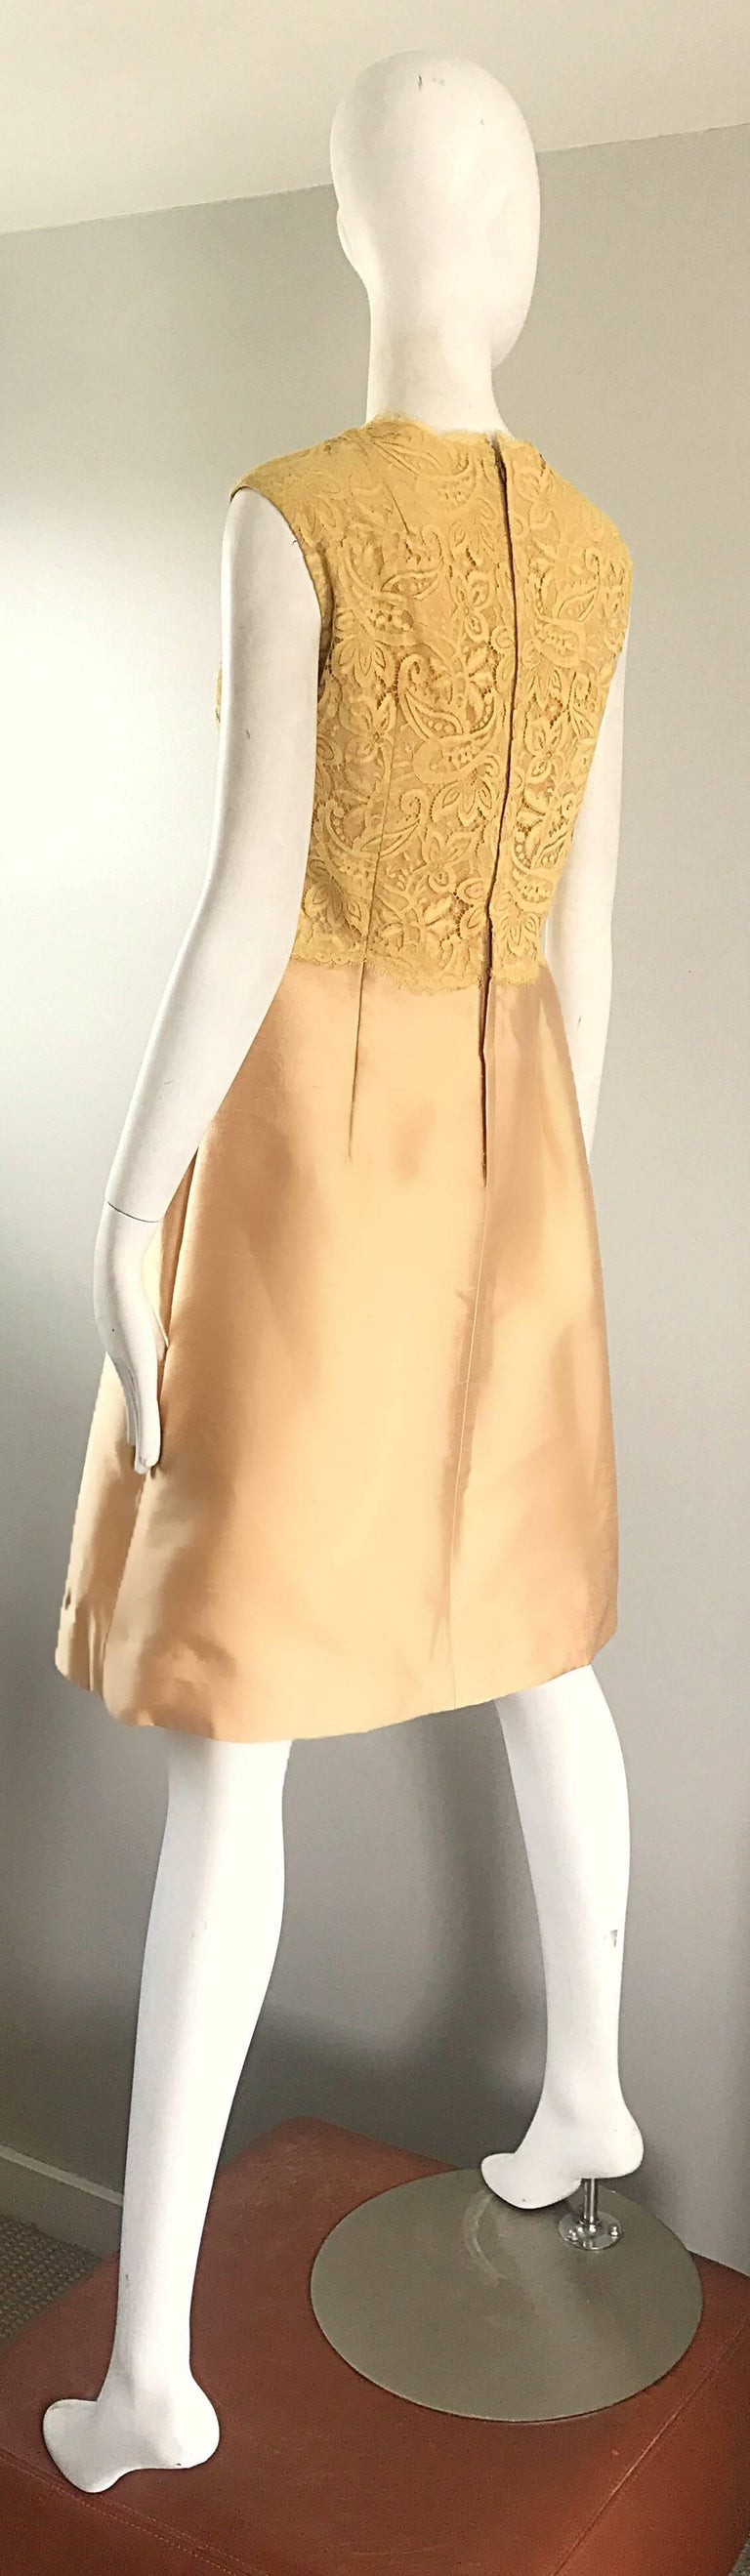 Women's 1960s Rappi Demi Couture Gold + Yellow Silk Shantung + Lace Vintage A Line Dress